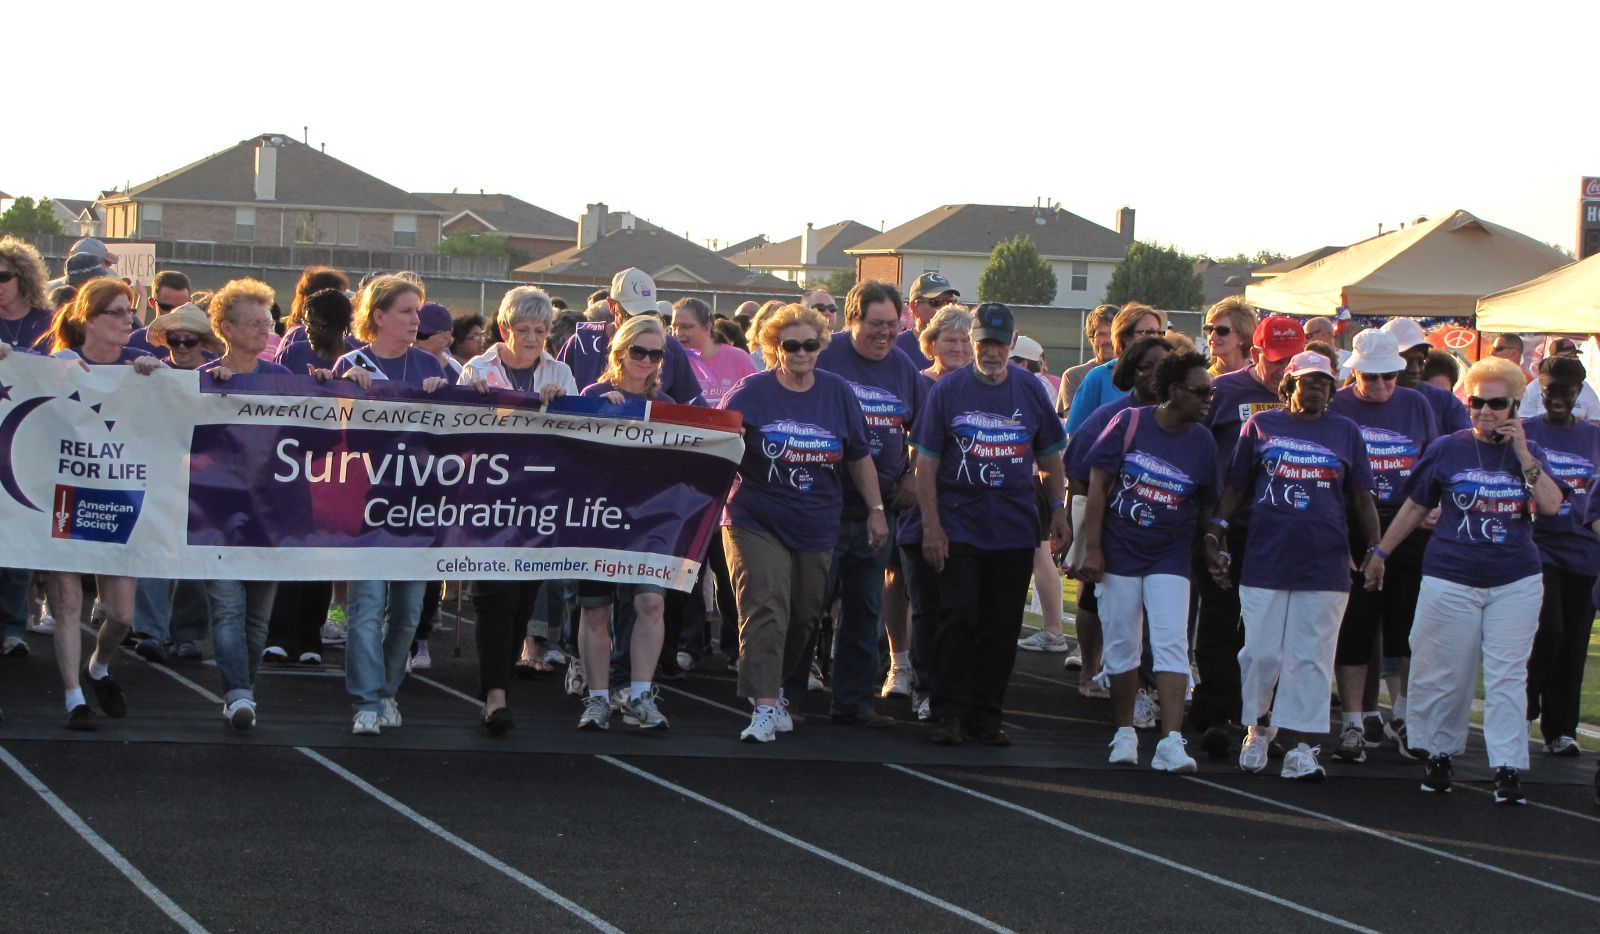 Relay for Life of Mesquite is registering teams. The event will be at 6 p.m. May 17 at Judge Frank Berry Middle School, 2675 Bear Drive.